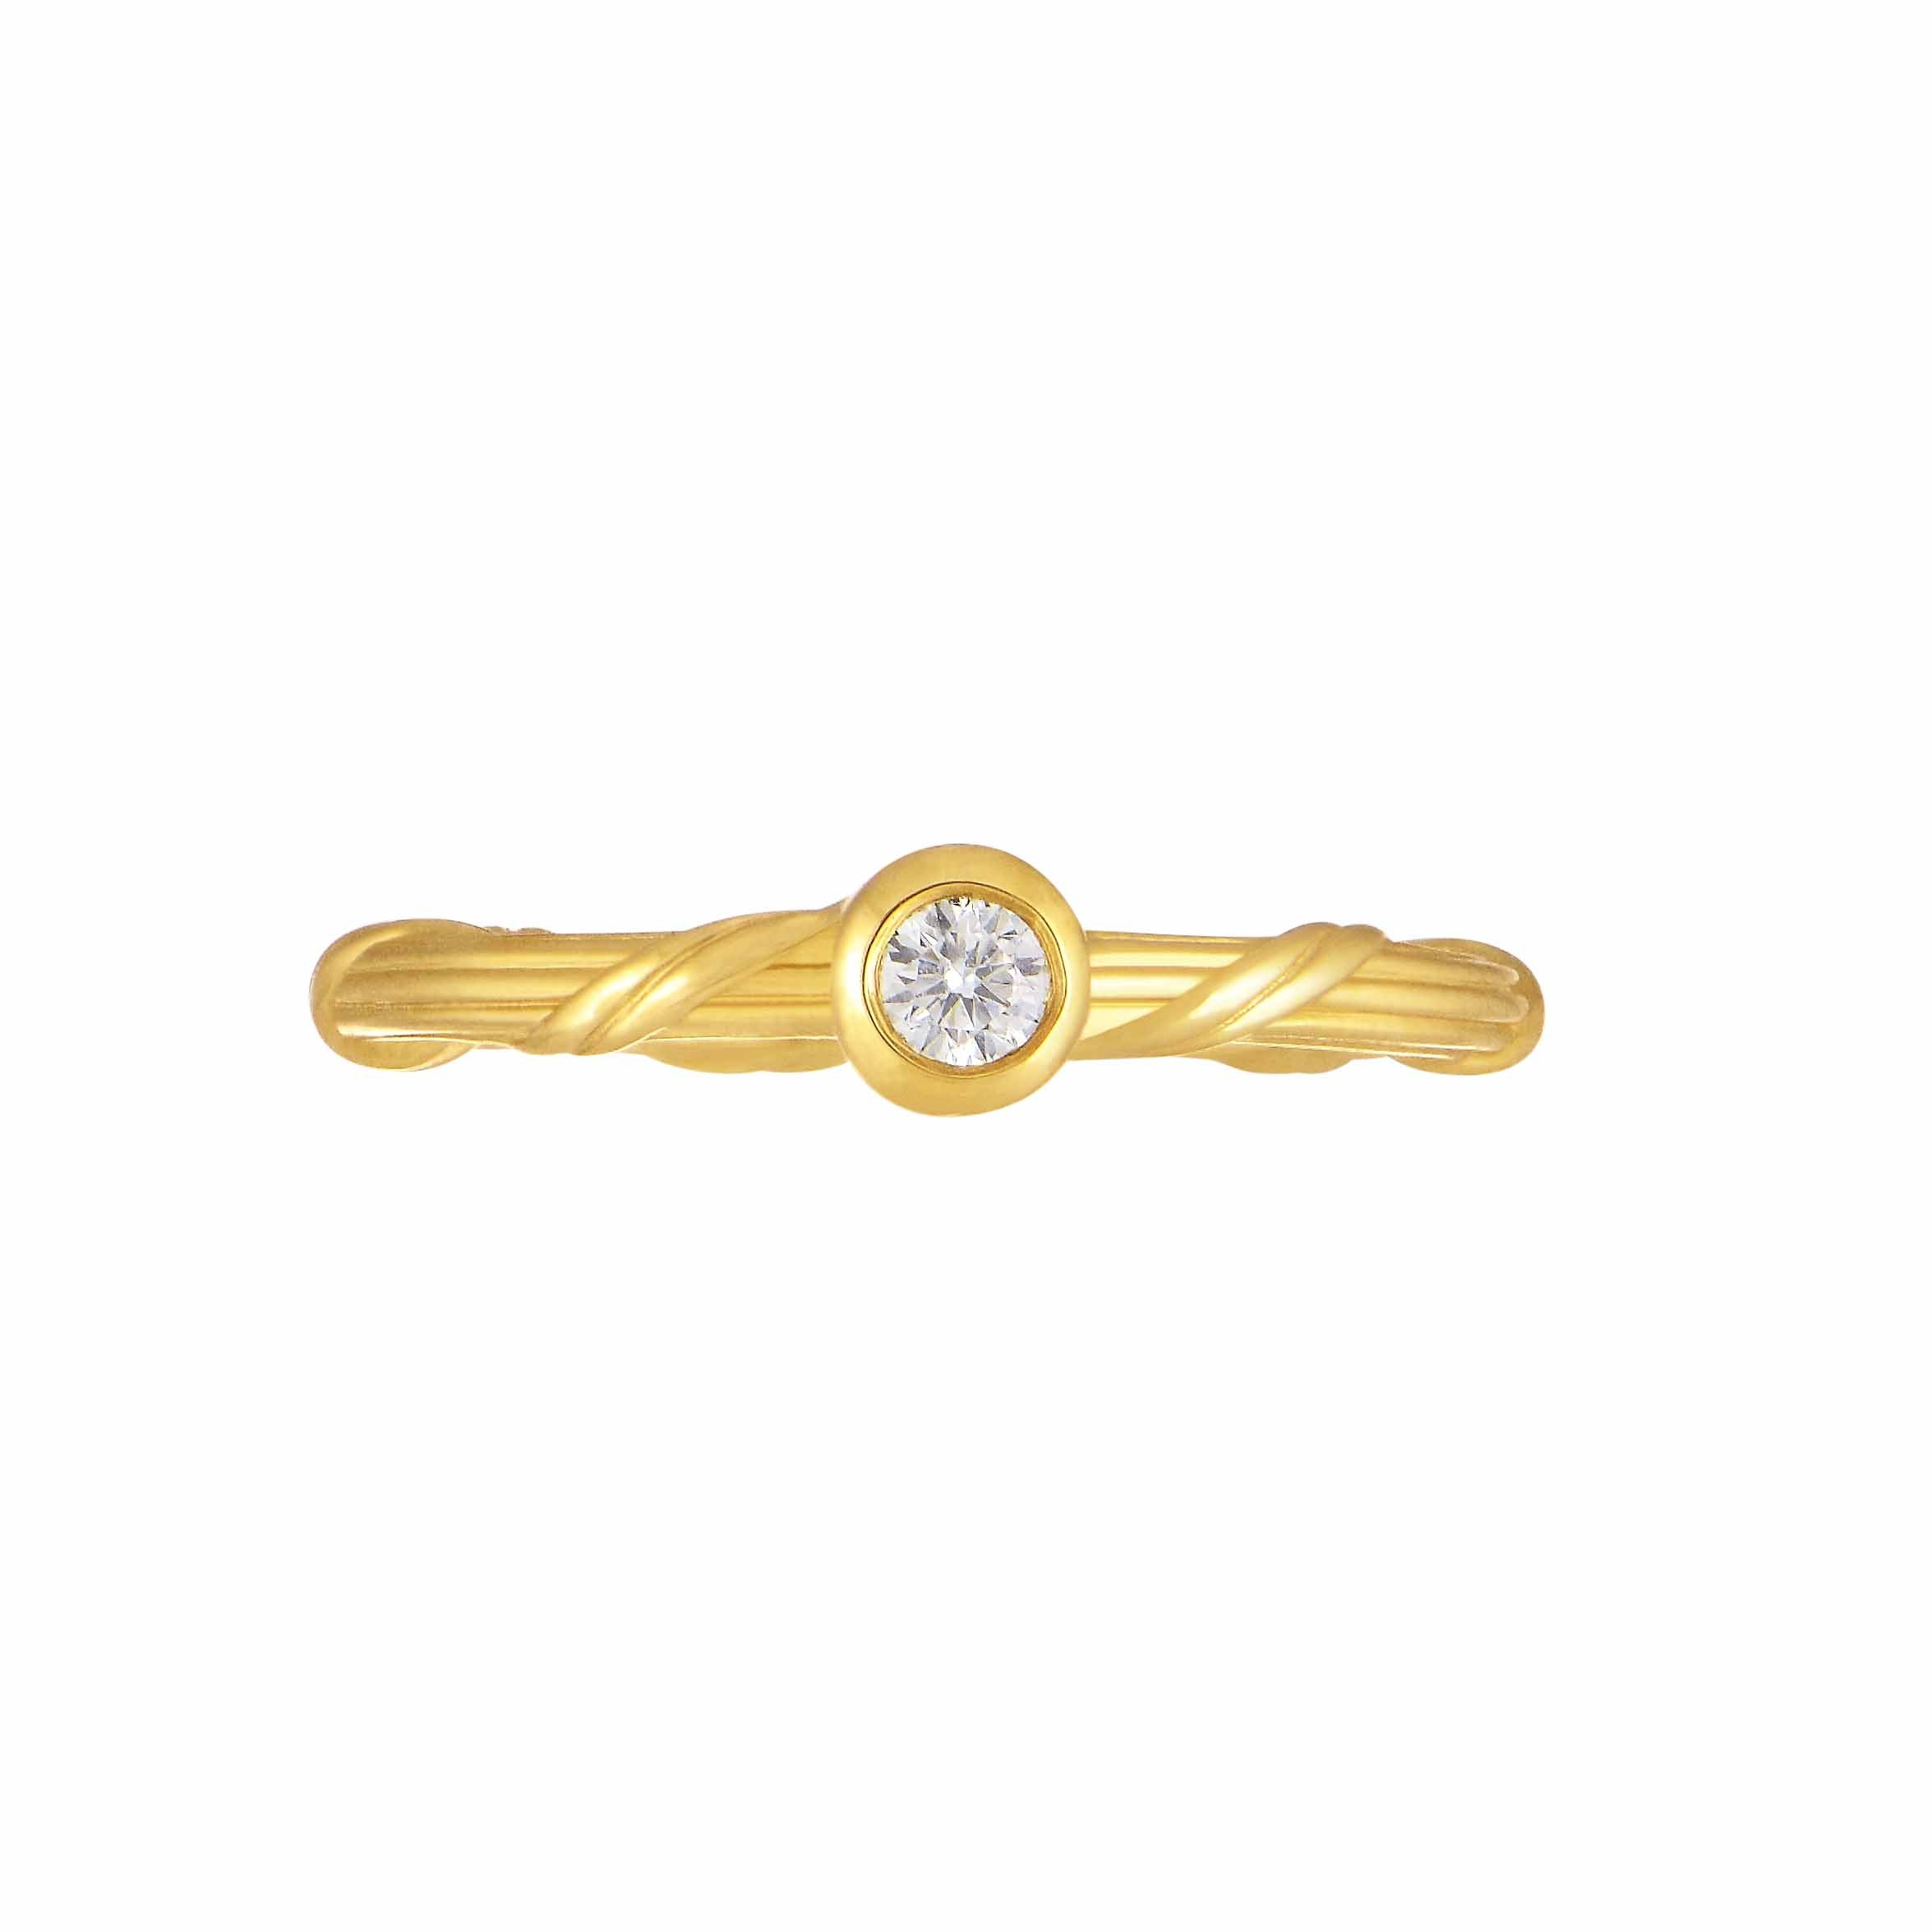 Heritage Diamond Ring in 18K gold